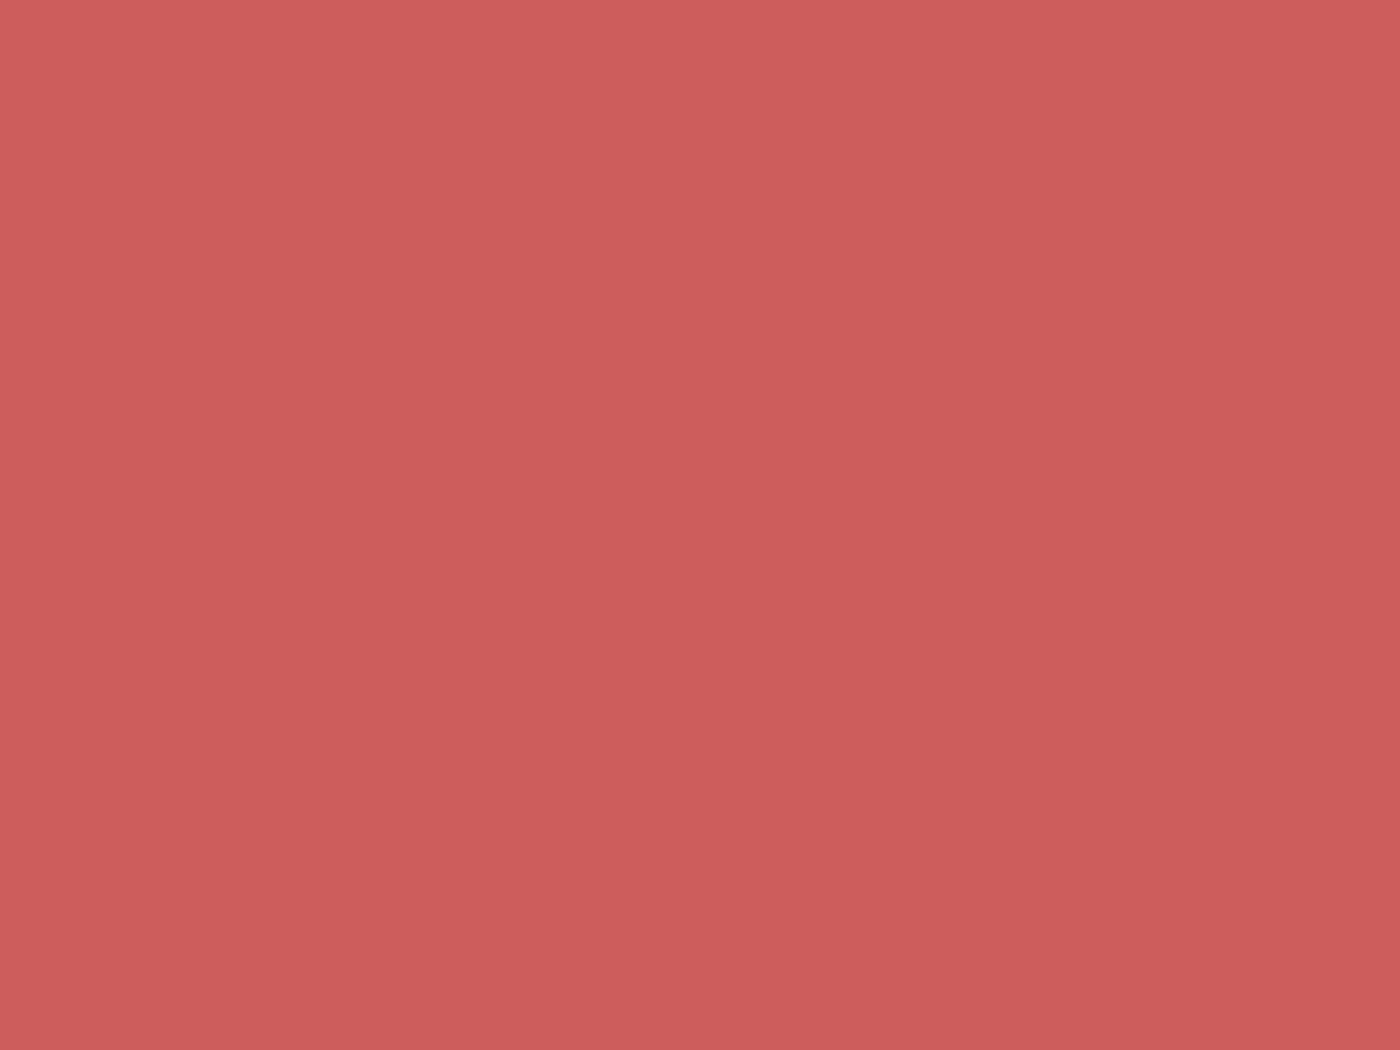 1400x1050 Indian Red Solid Color Background